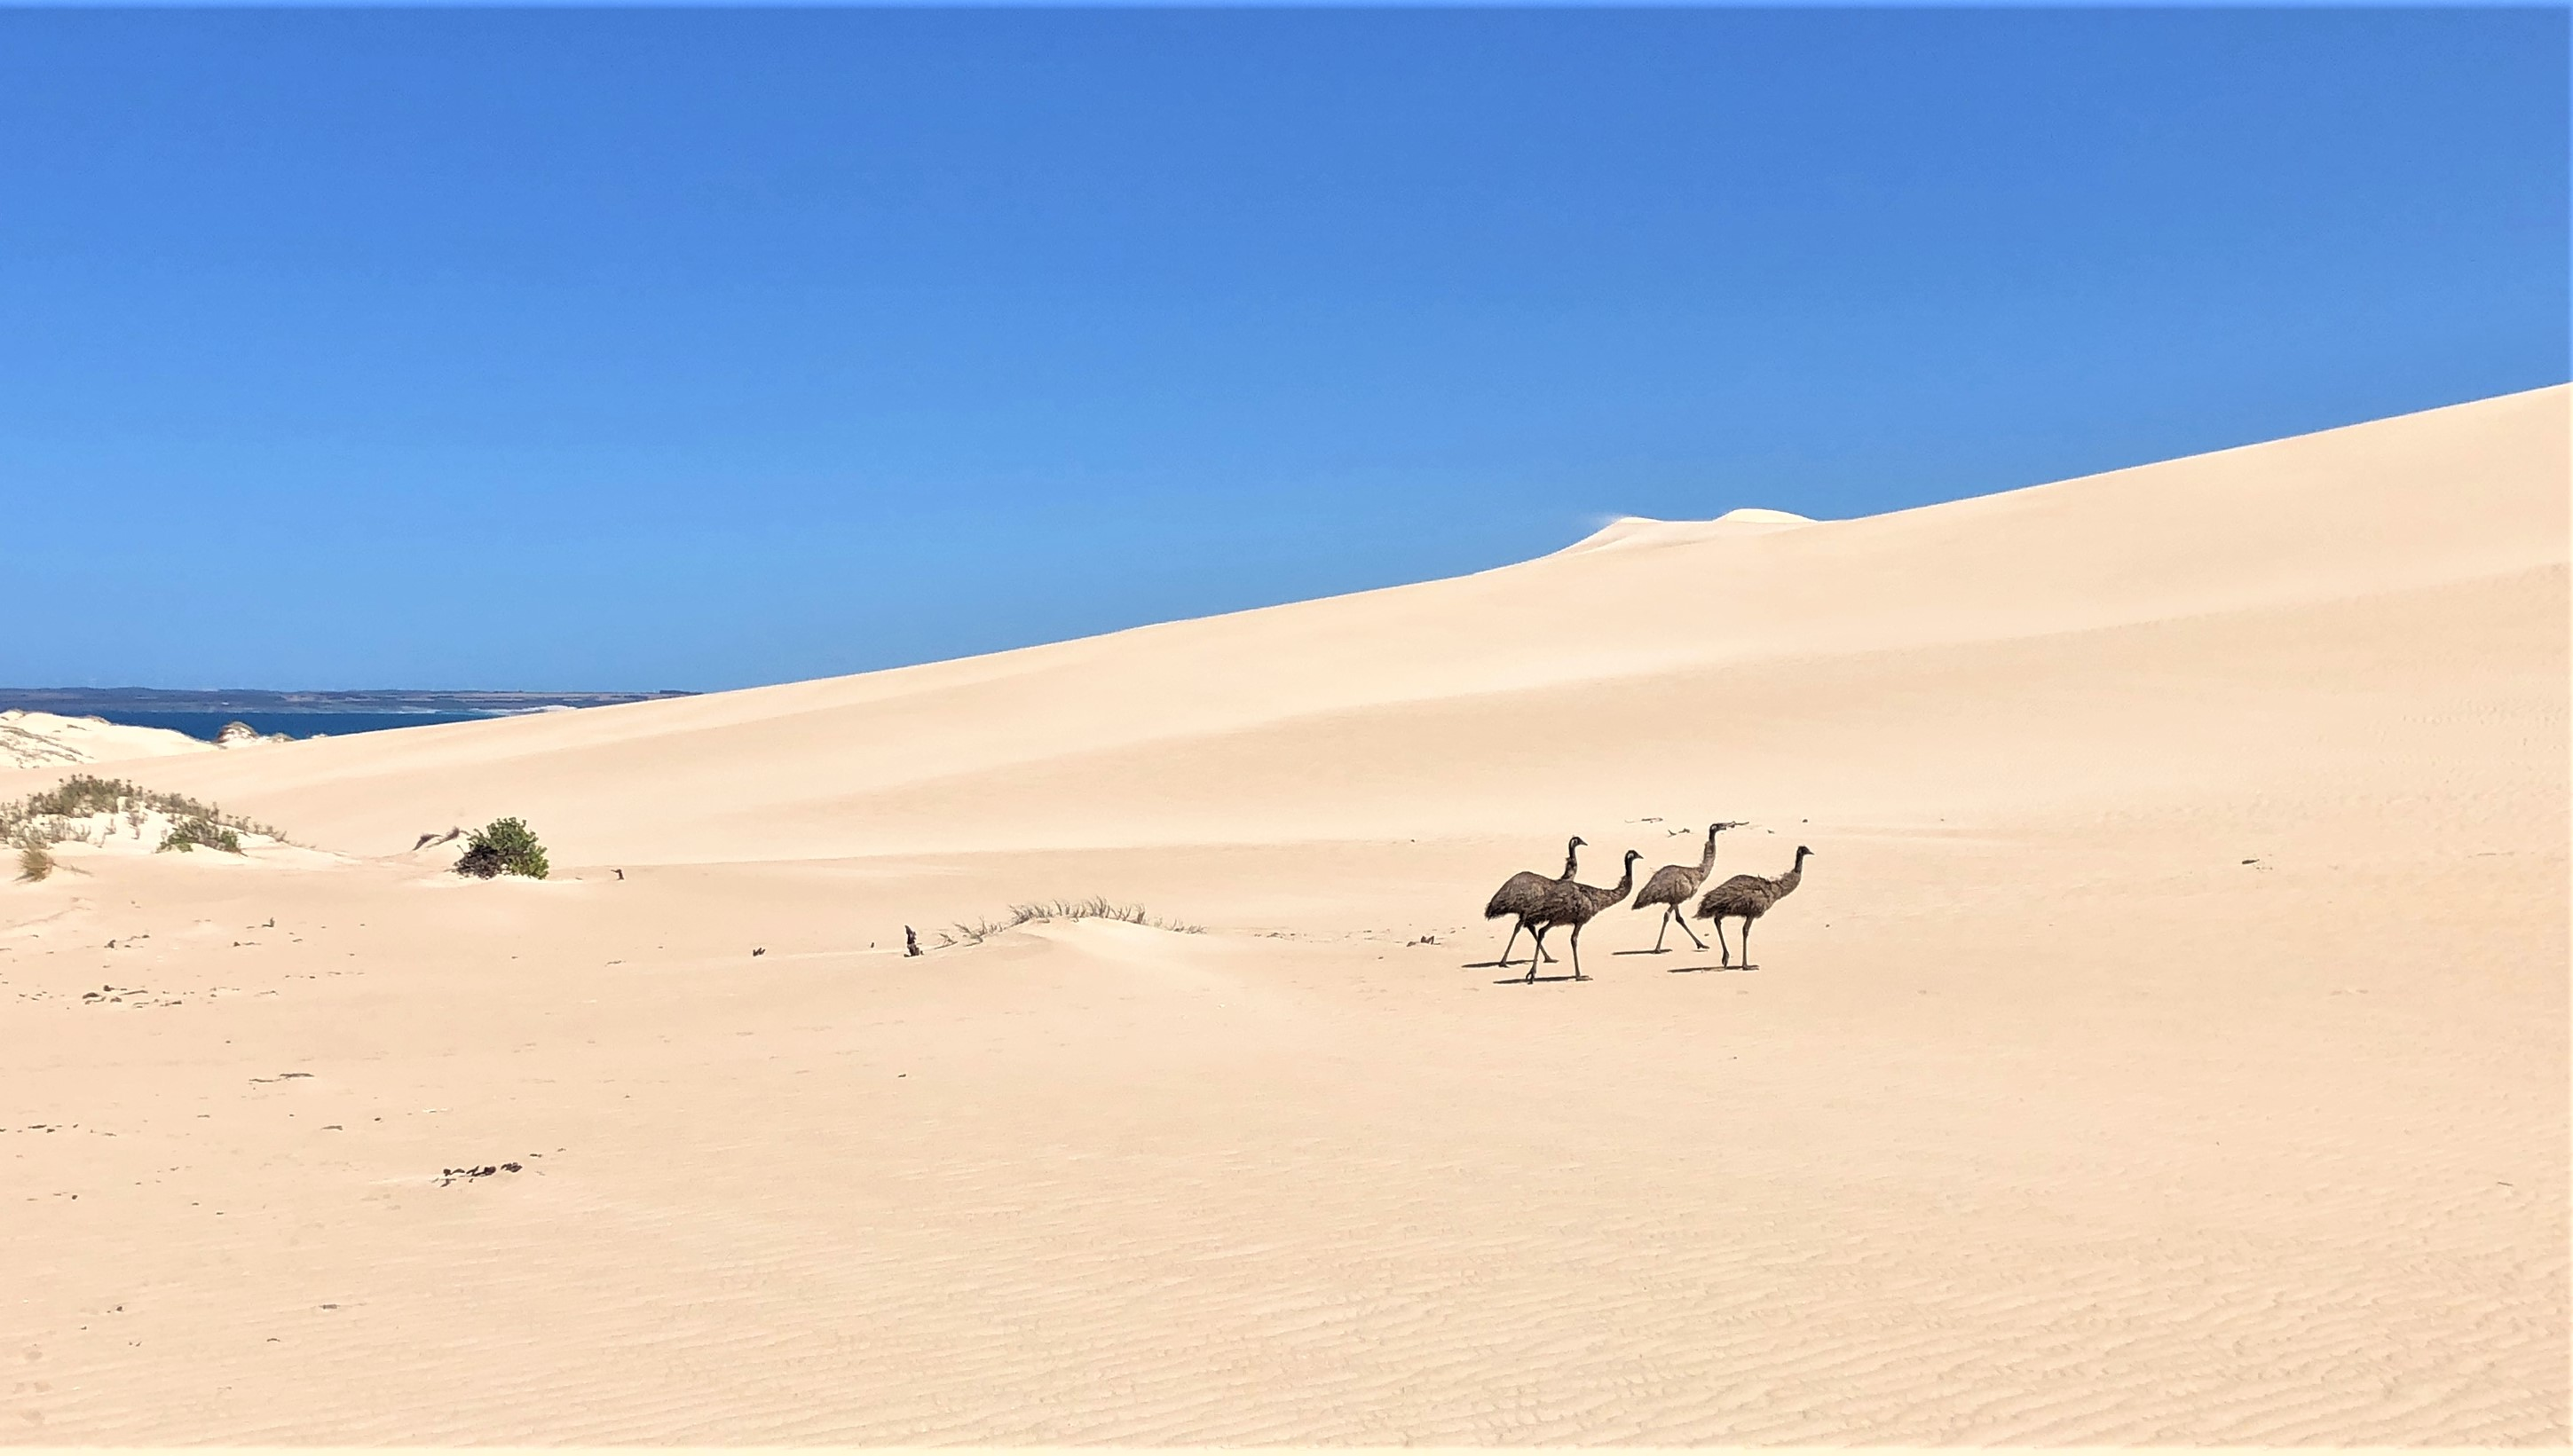 Wild emus stalk their way through the rolling sand dunes - Photo Credit: Crooked Compass